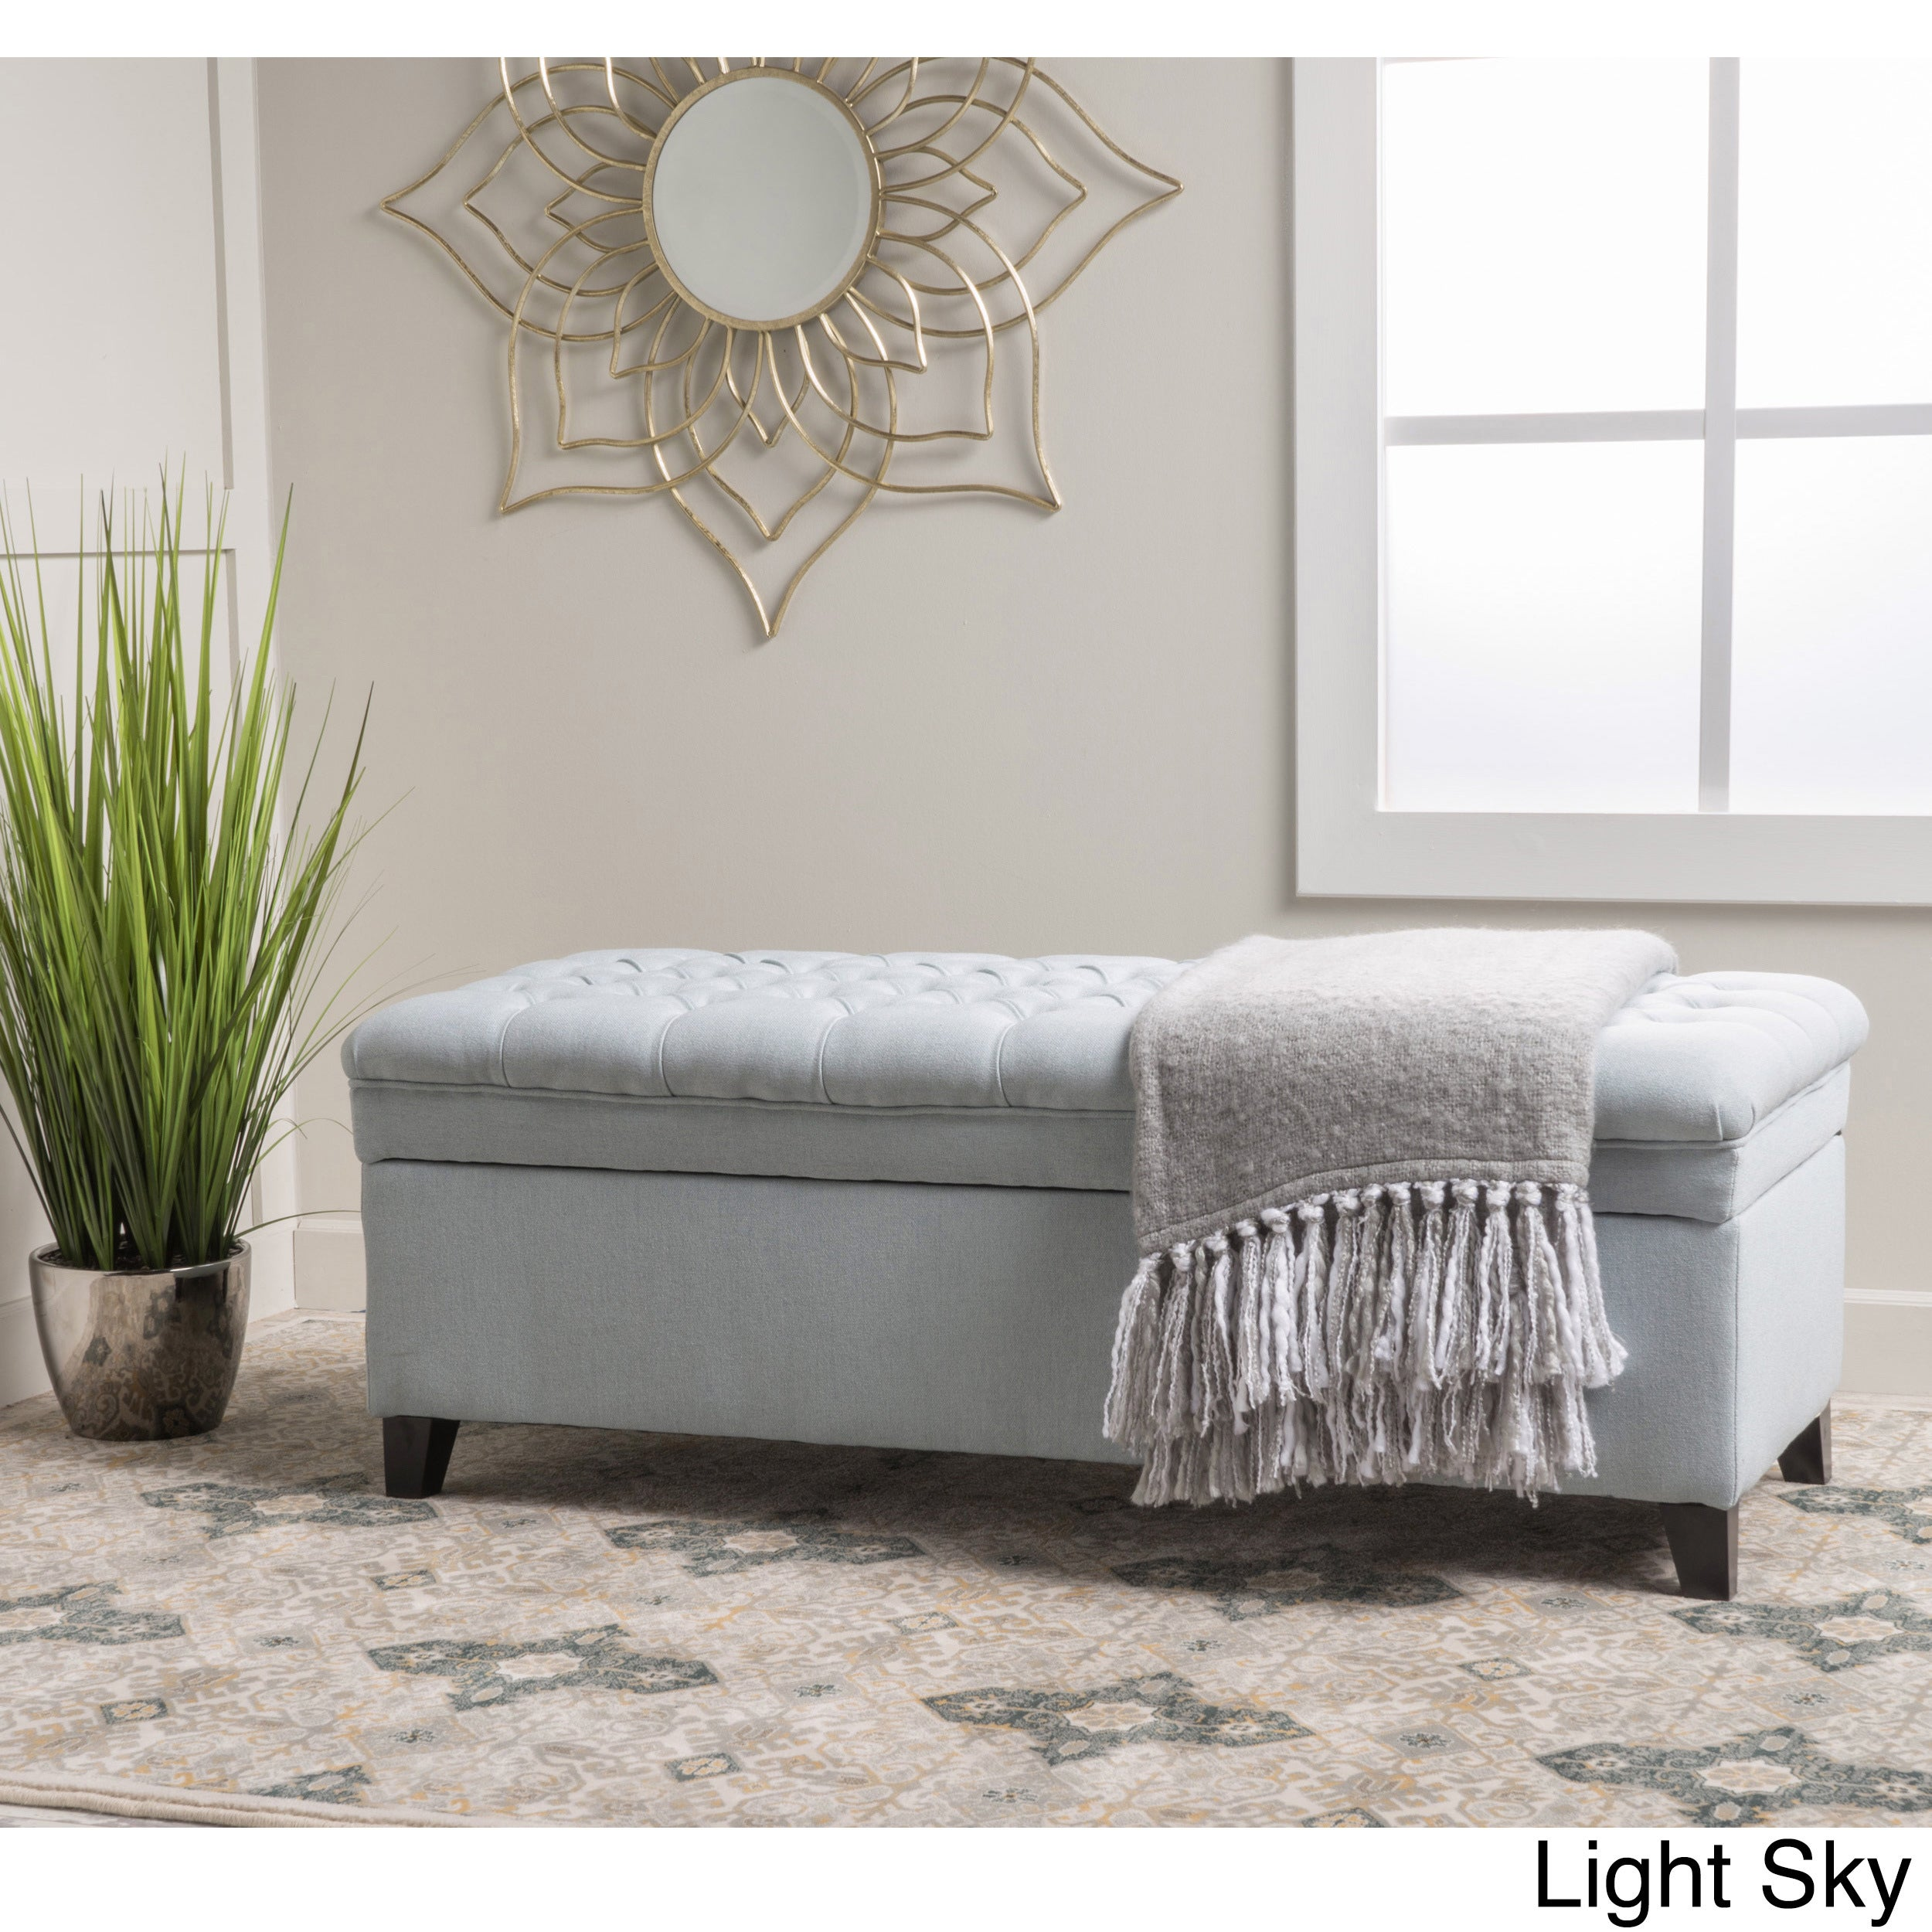 Kosas Home Fabric Storage Bedroom Bench Reviews: Christopher Knight Home Hastings Tufted Fabric Storage